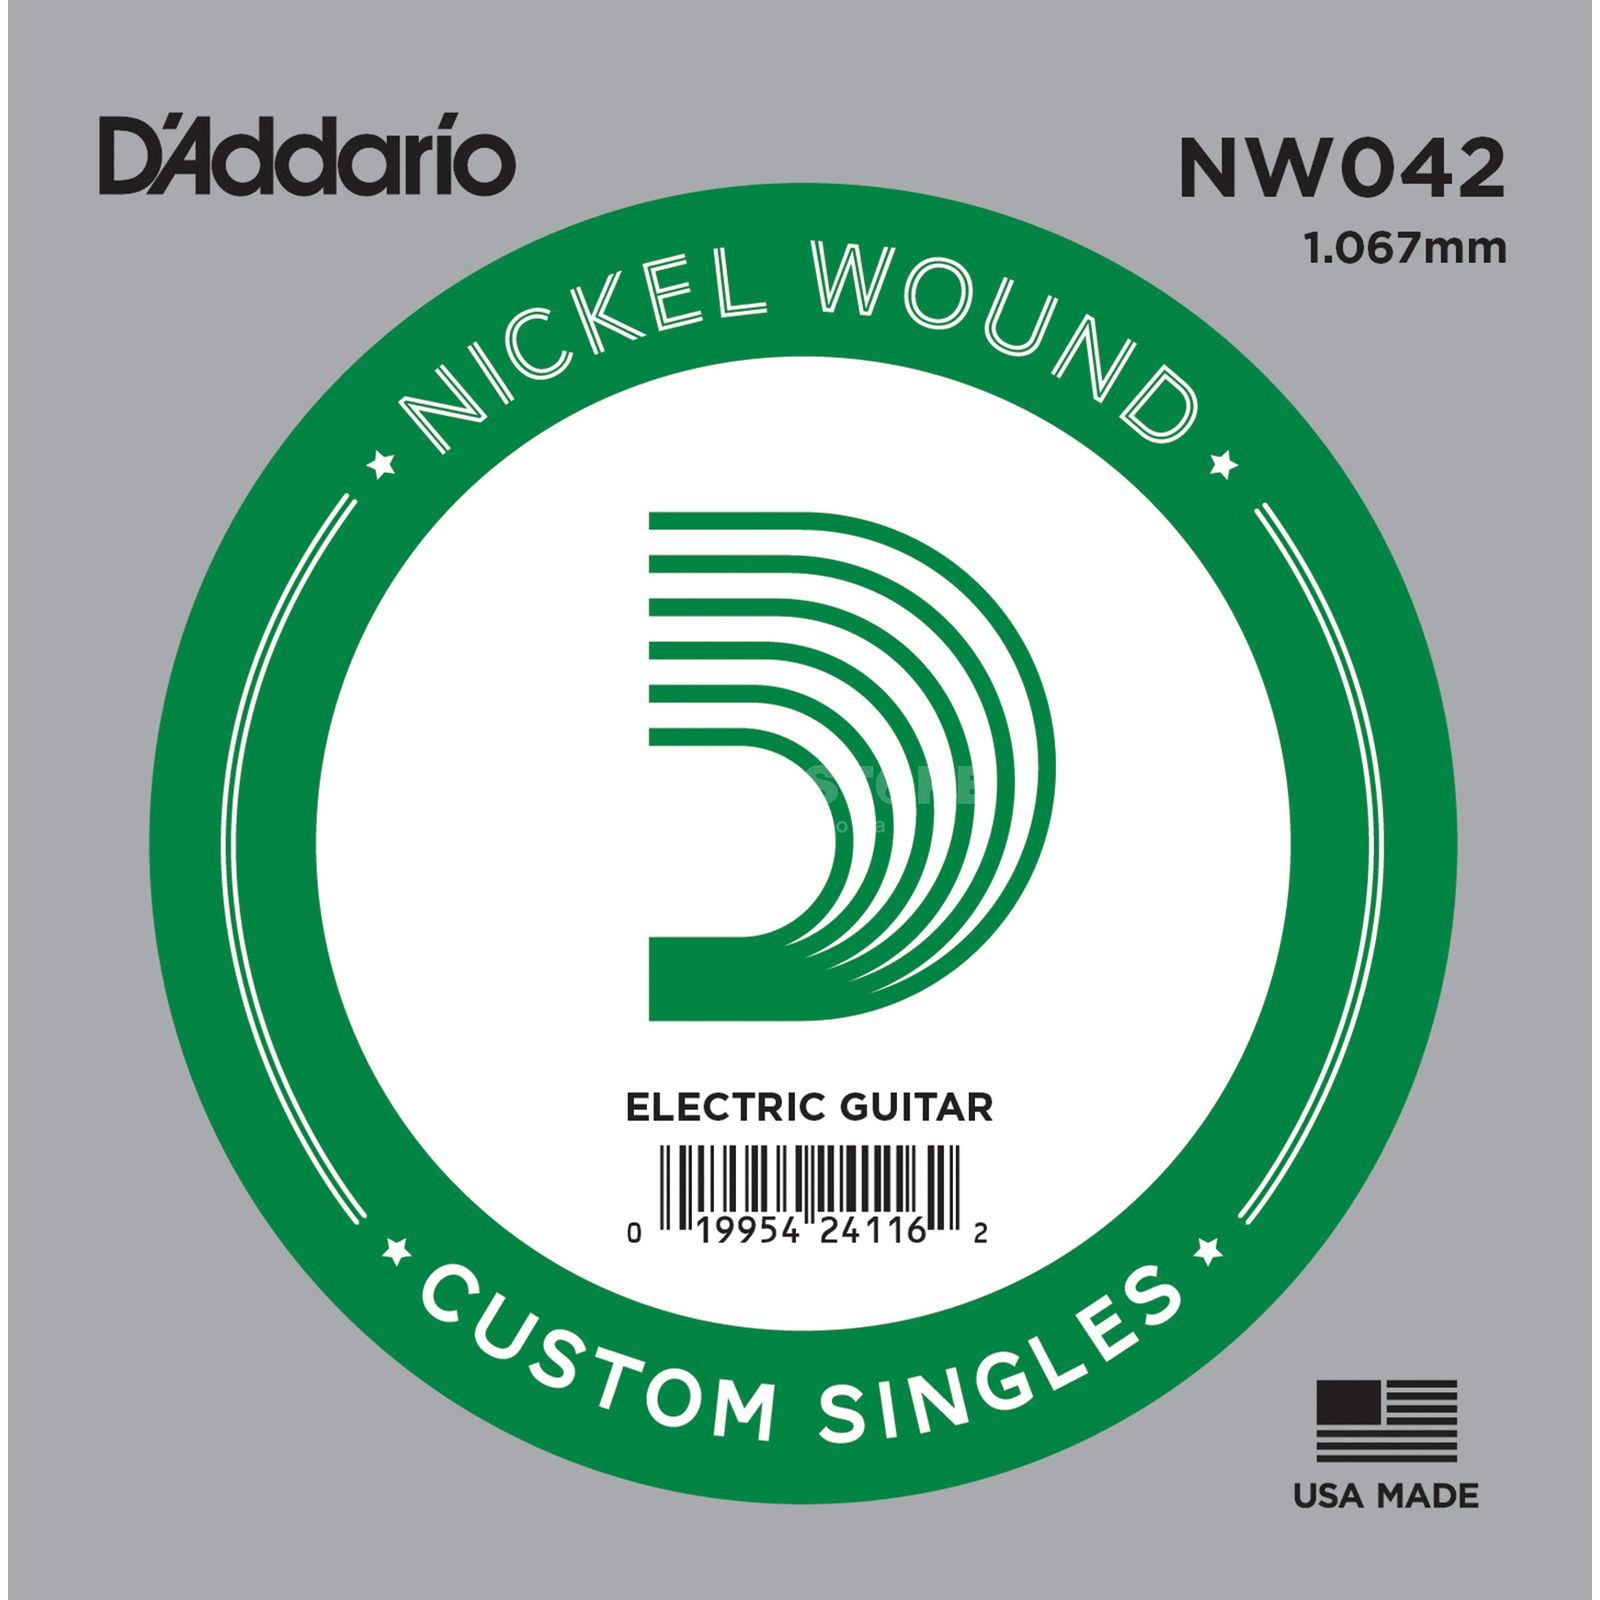 D'Addario Single String NW042 Nickelwound Immagine prodotto